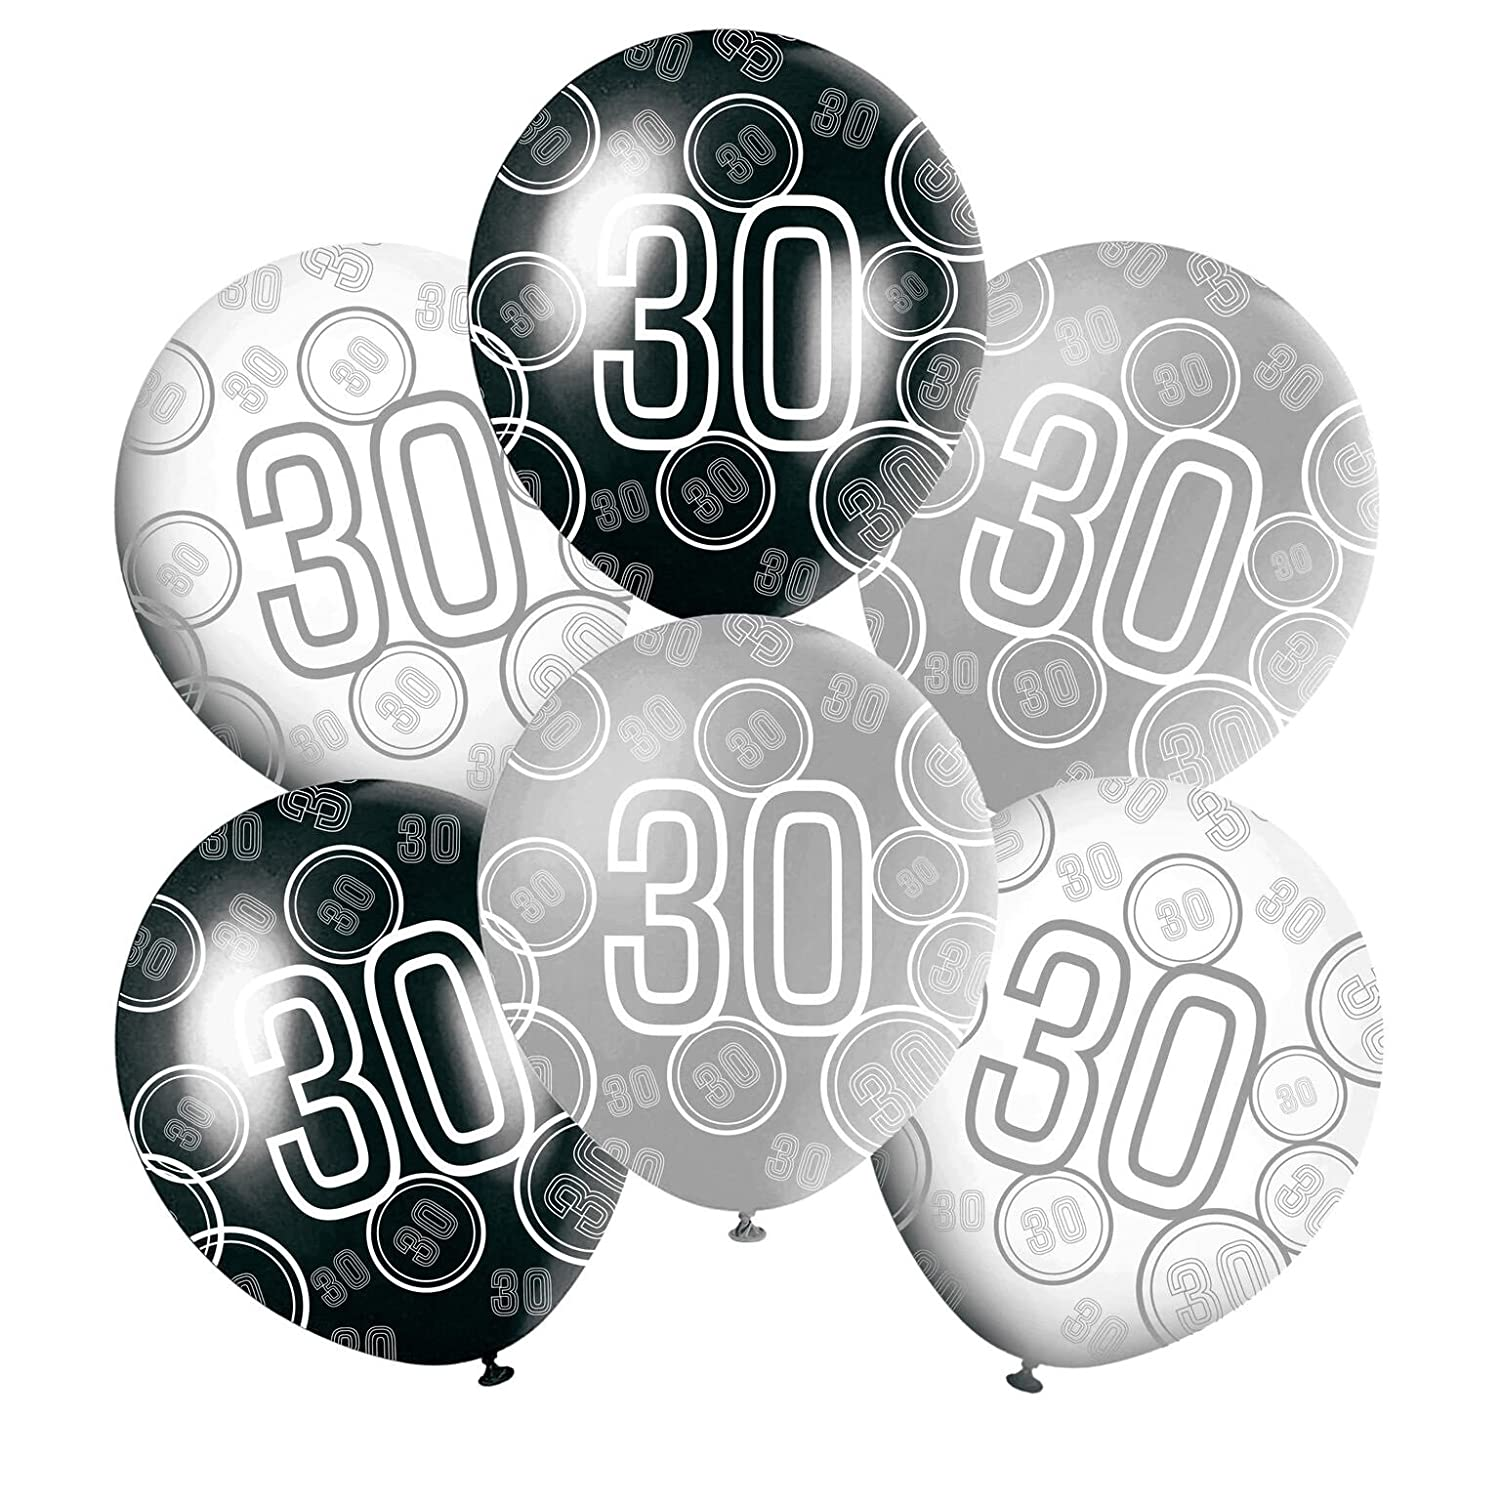 30th Mixed Black White Silver Glitz Girls Or Boys Classy Happy Birthday Balloons Anniversary Special Occasion Party Decoration Latex 12 6 In